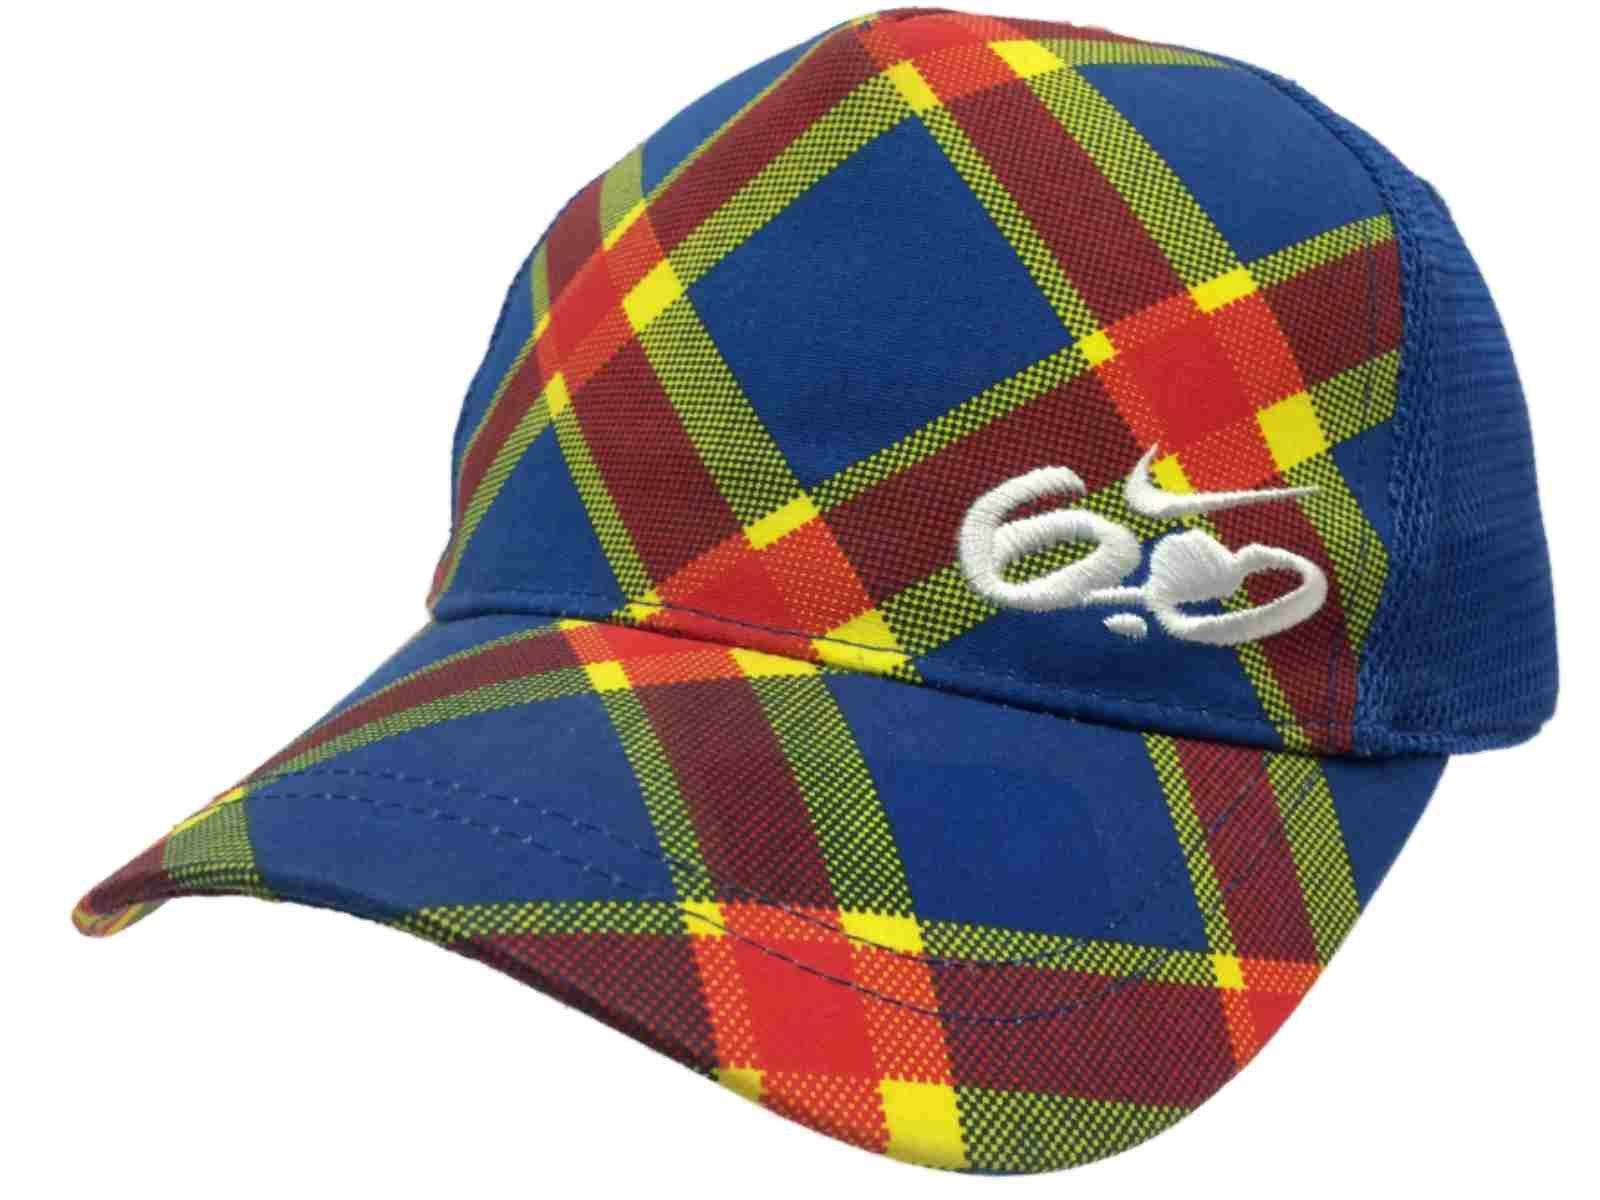 brand new e1210 d49a6 czech nike 6.0 youth red yellow blue plaid mesh adjustable hat cap 8 20  60fea 67fdd